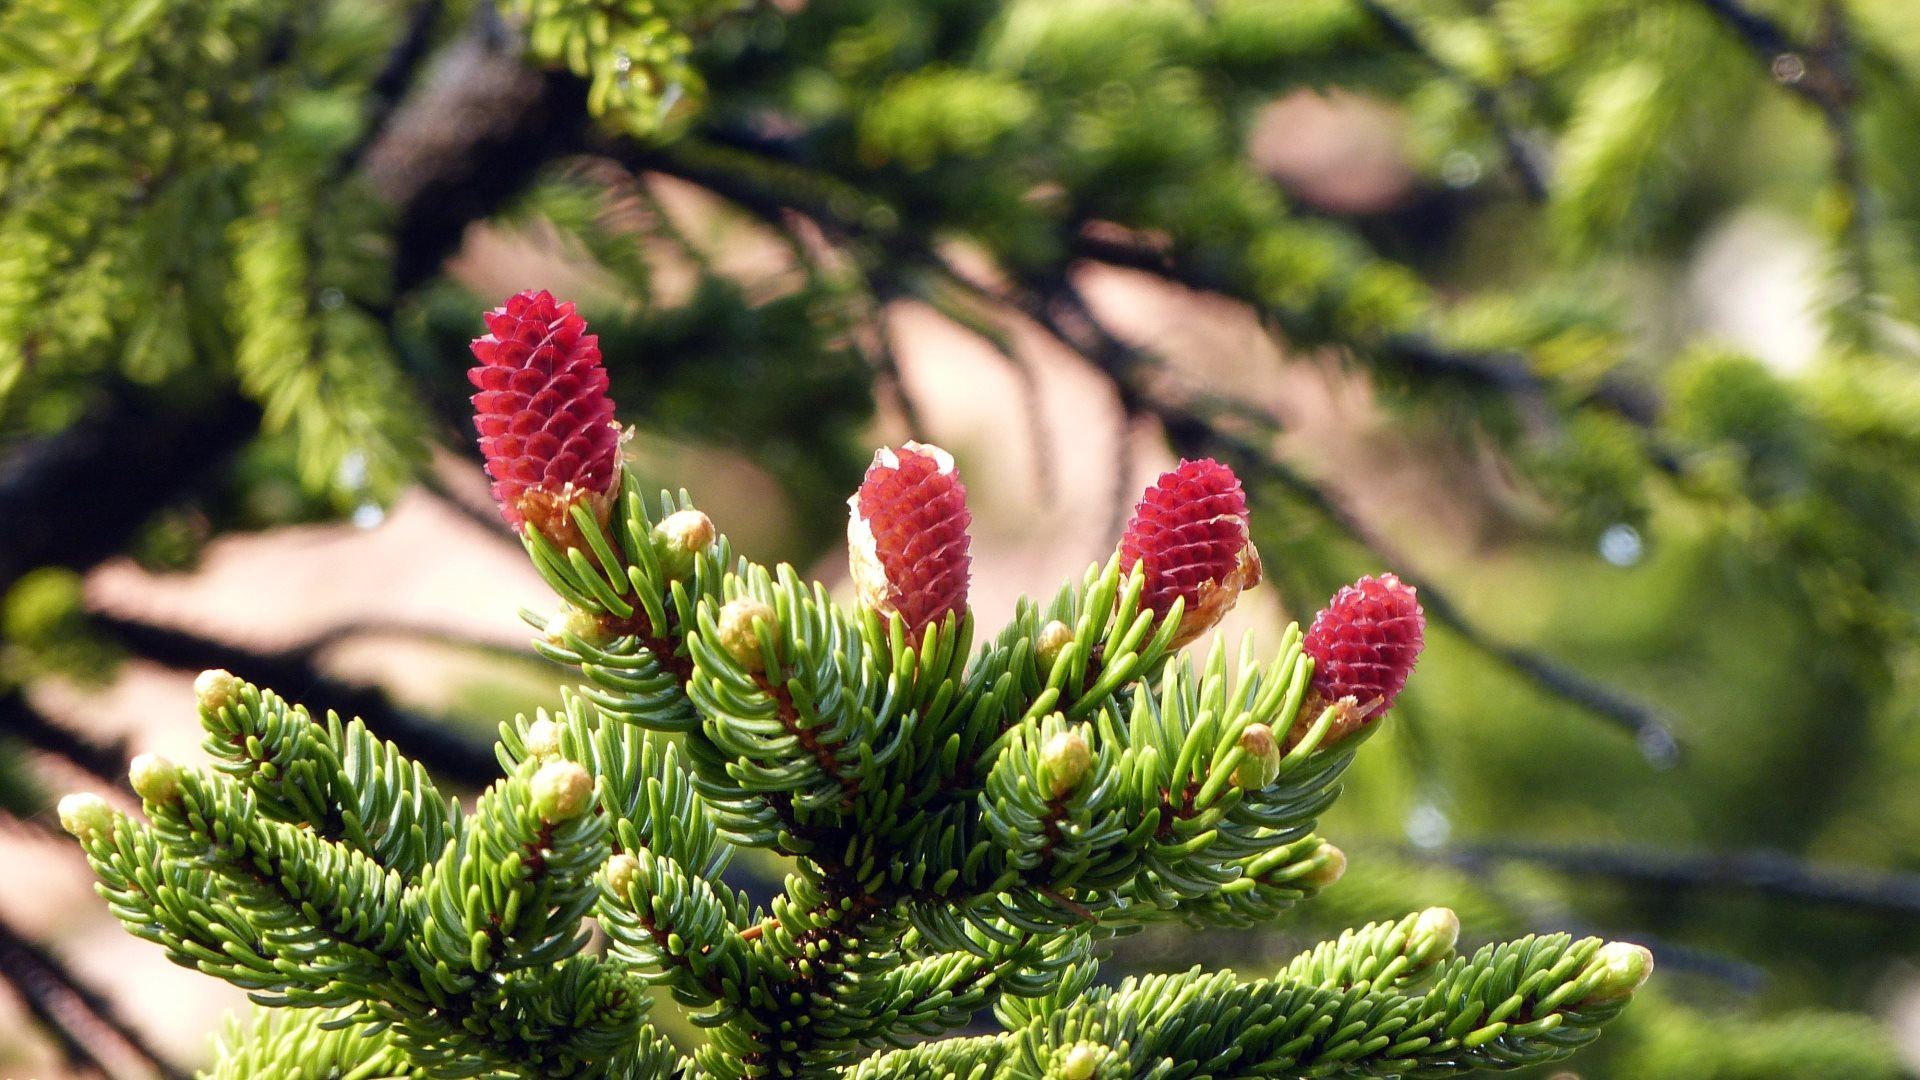 Pine Tree Flowers Cherry Green Flowers HD Wallpapers 4K Wallpapers 1920x1080